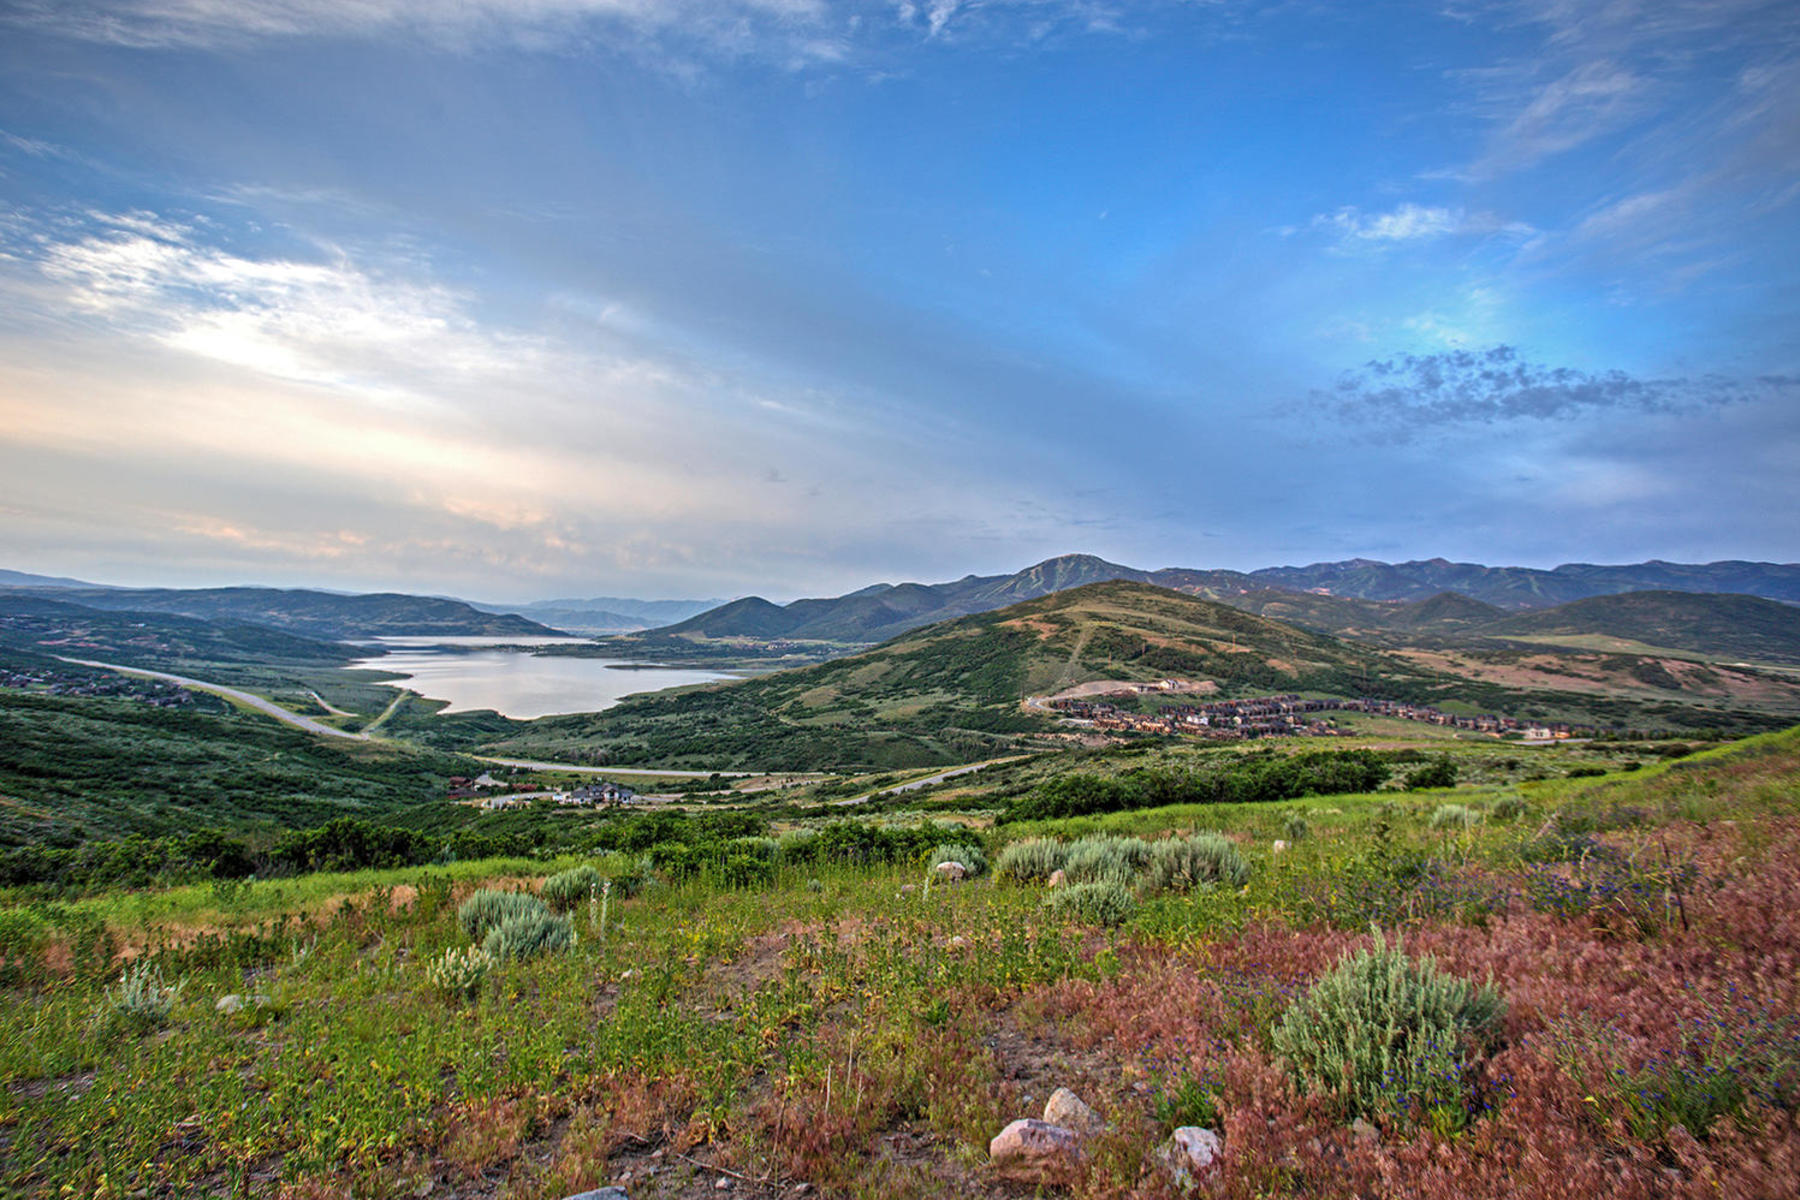 Land for Sale at Come Experience the Gated Community of Deer Vista 104 W Vista Ridge Rd Lot 91 Heber City, Utah, 84032 United States